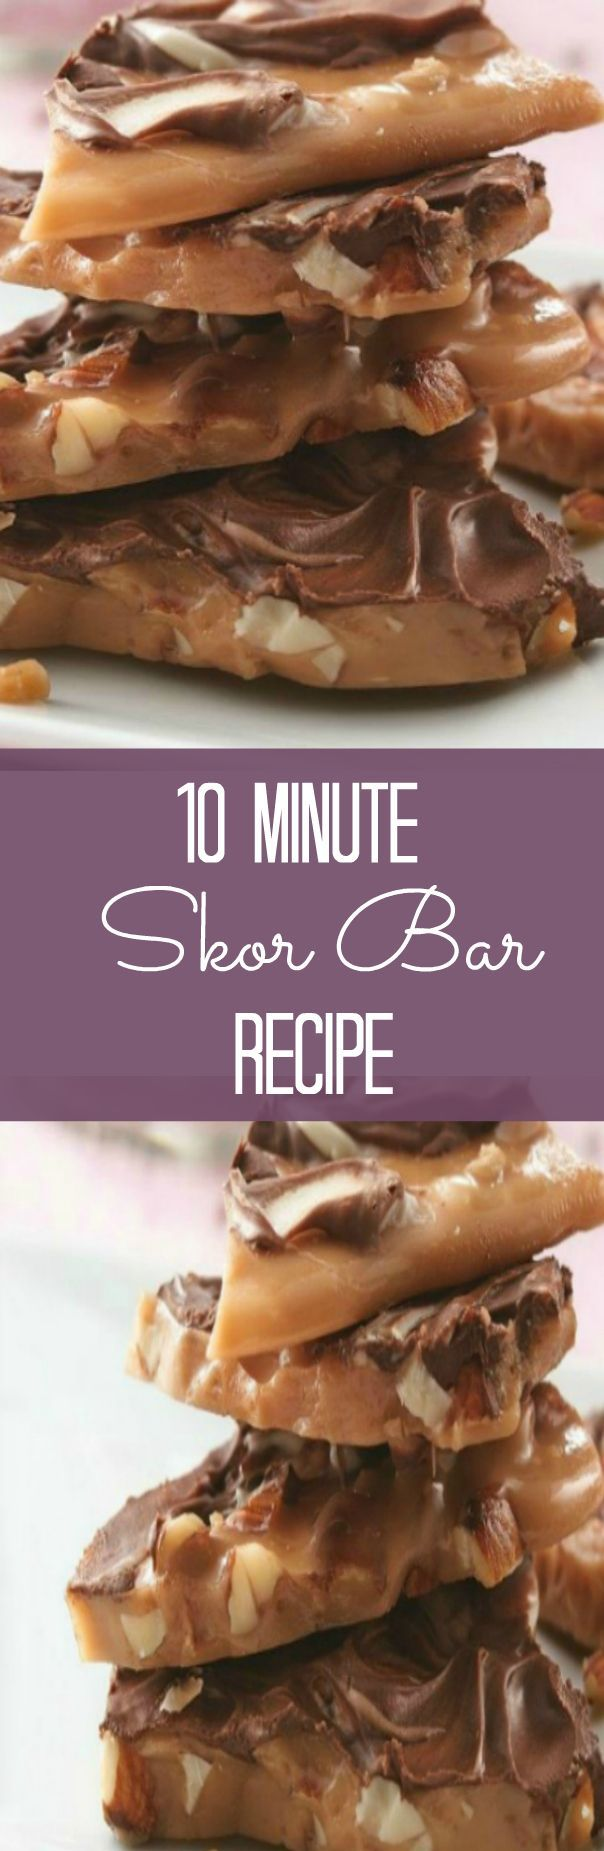 You'll love how easy this 10 Minute SKOR Bar Recipe is. You'll also love the buttery caramel and milk chocolate Tastes just like a SKOR Bar!